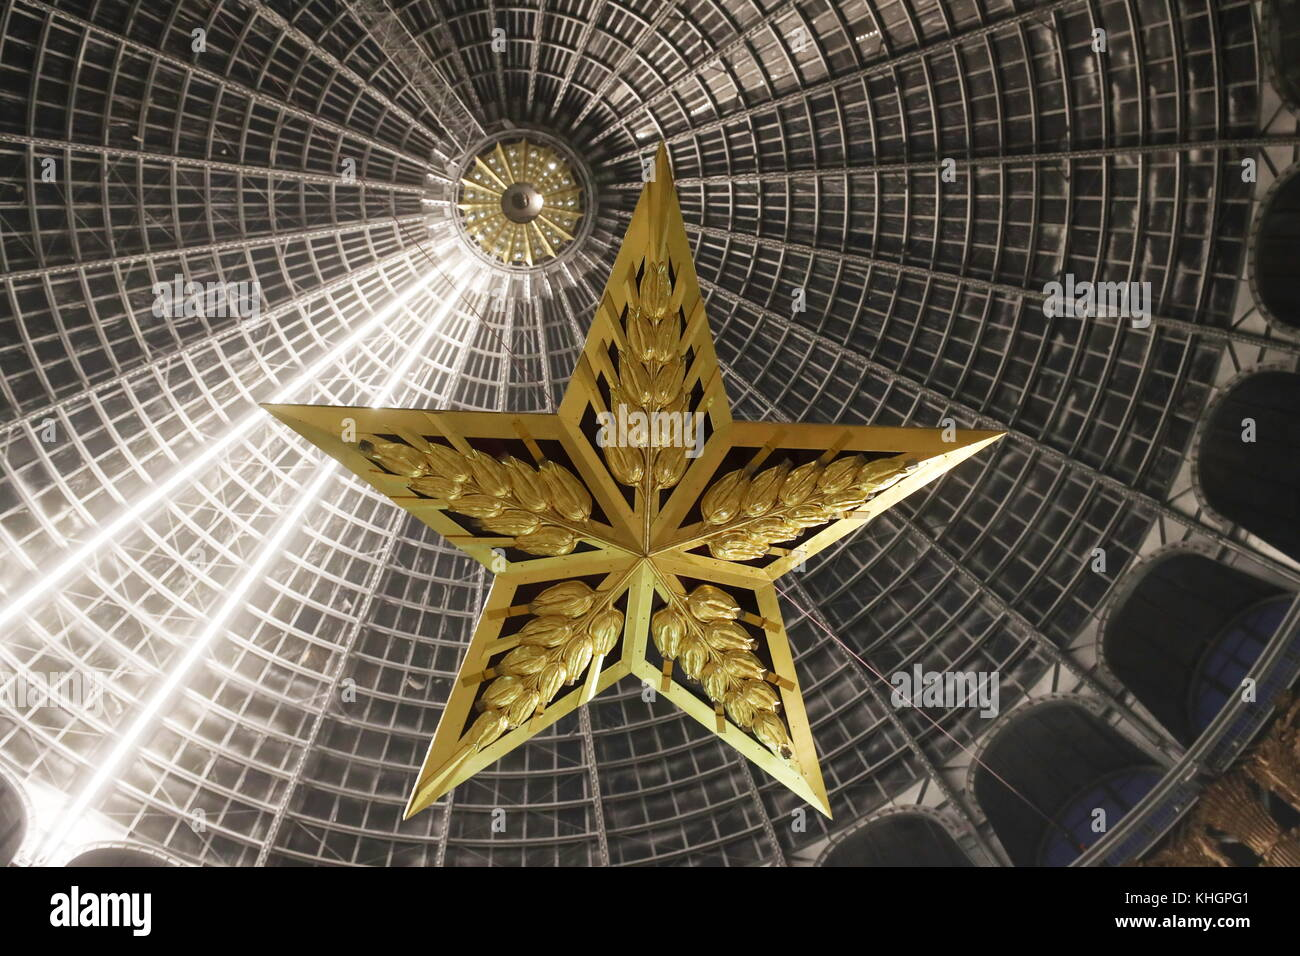 Moscow russia 17th nov 2017 a star shaped chandelier installed a star shaped chandelier installed at the cosmos pavilion of the vdnkh exhibition centre the chandelier is a replica of the star that had been perched atop aloadofball Image collections